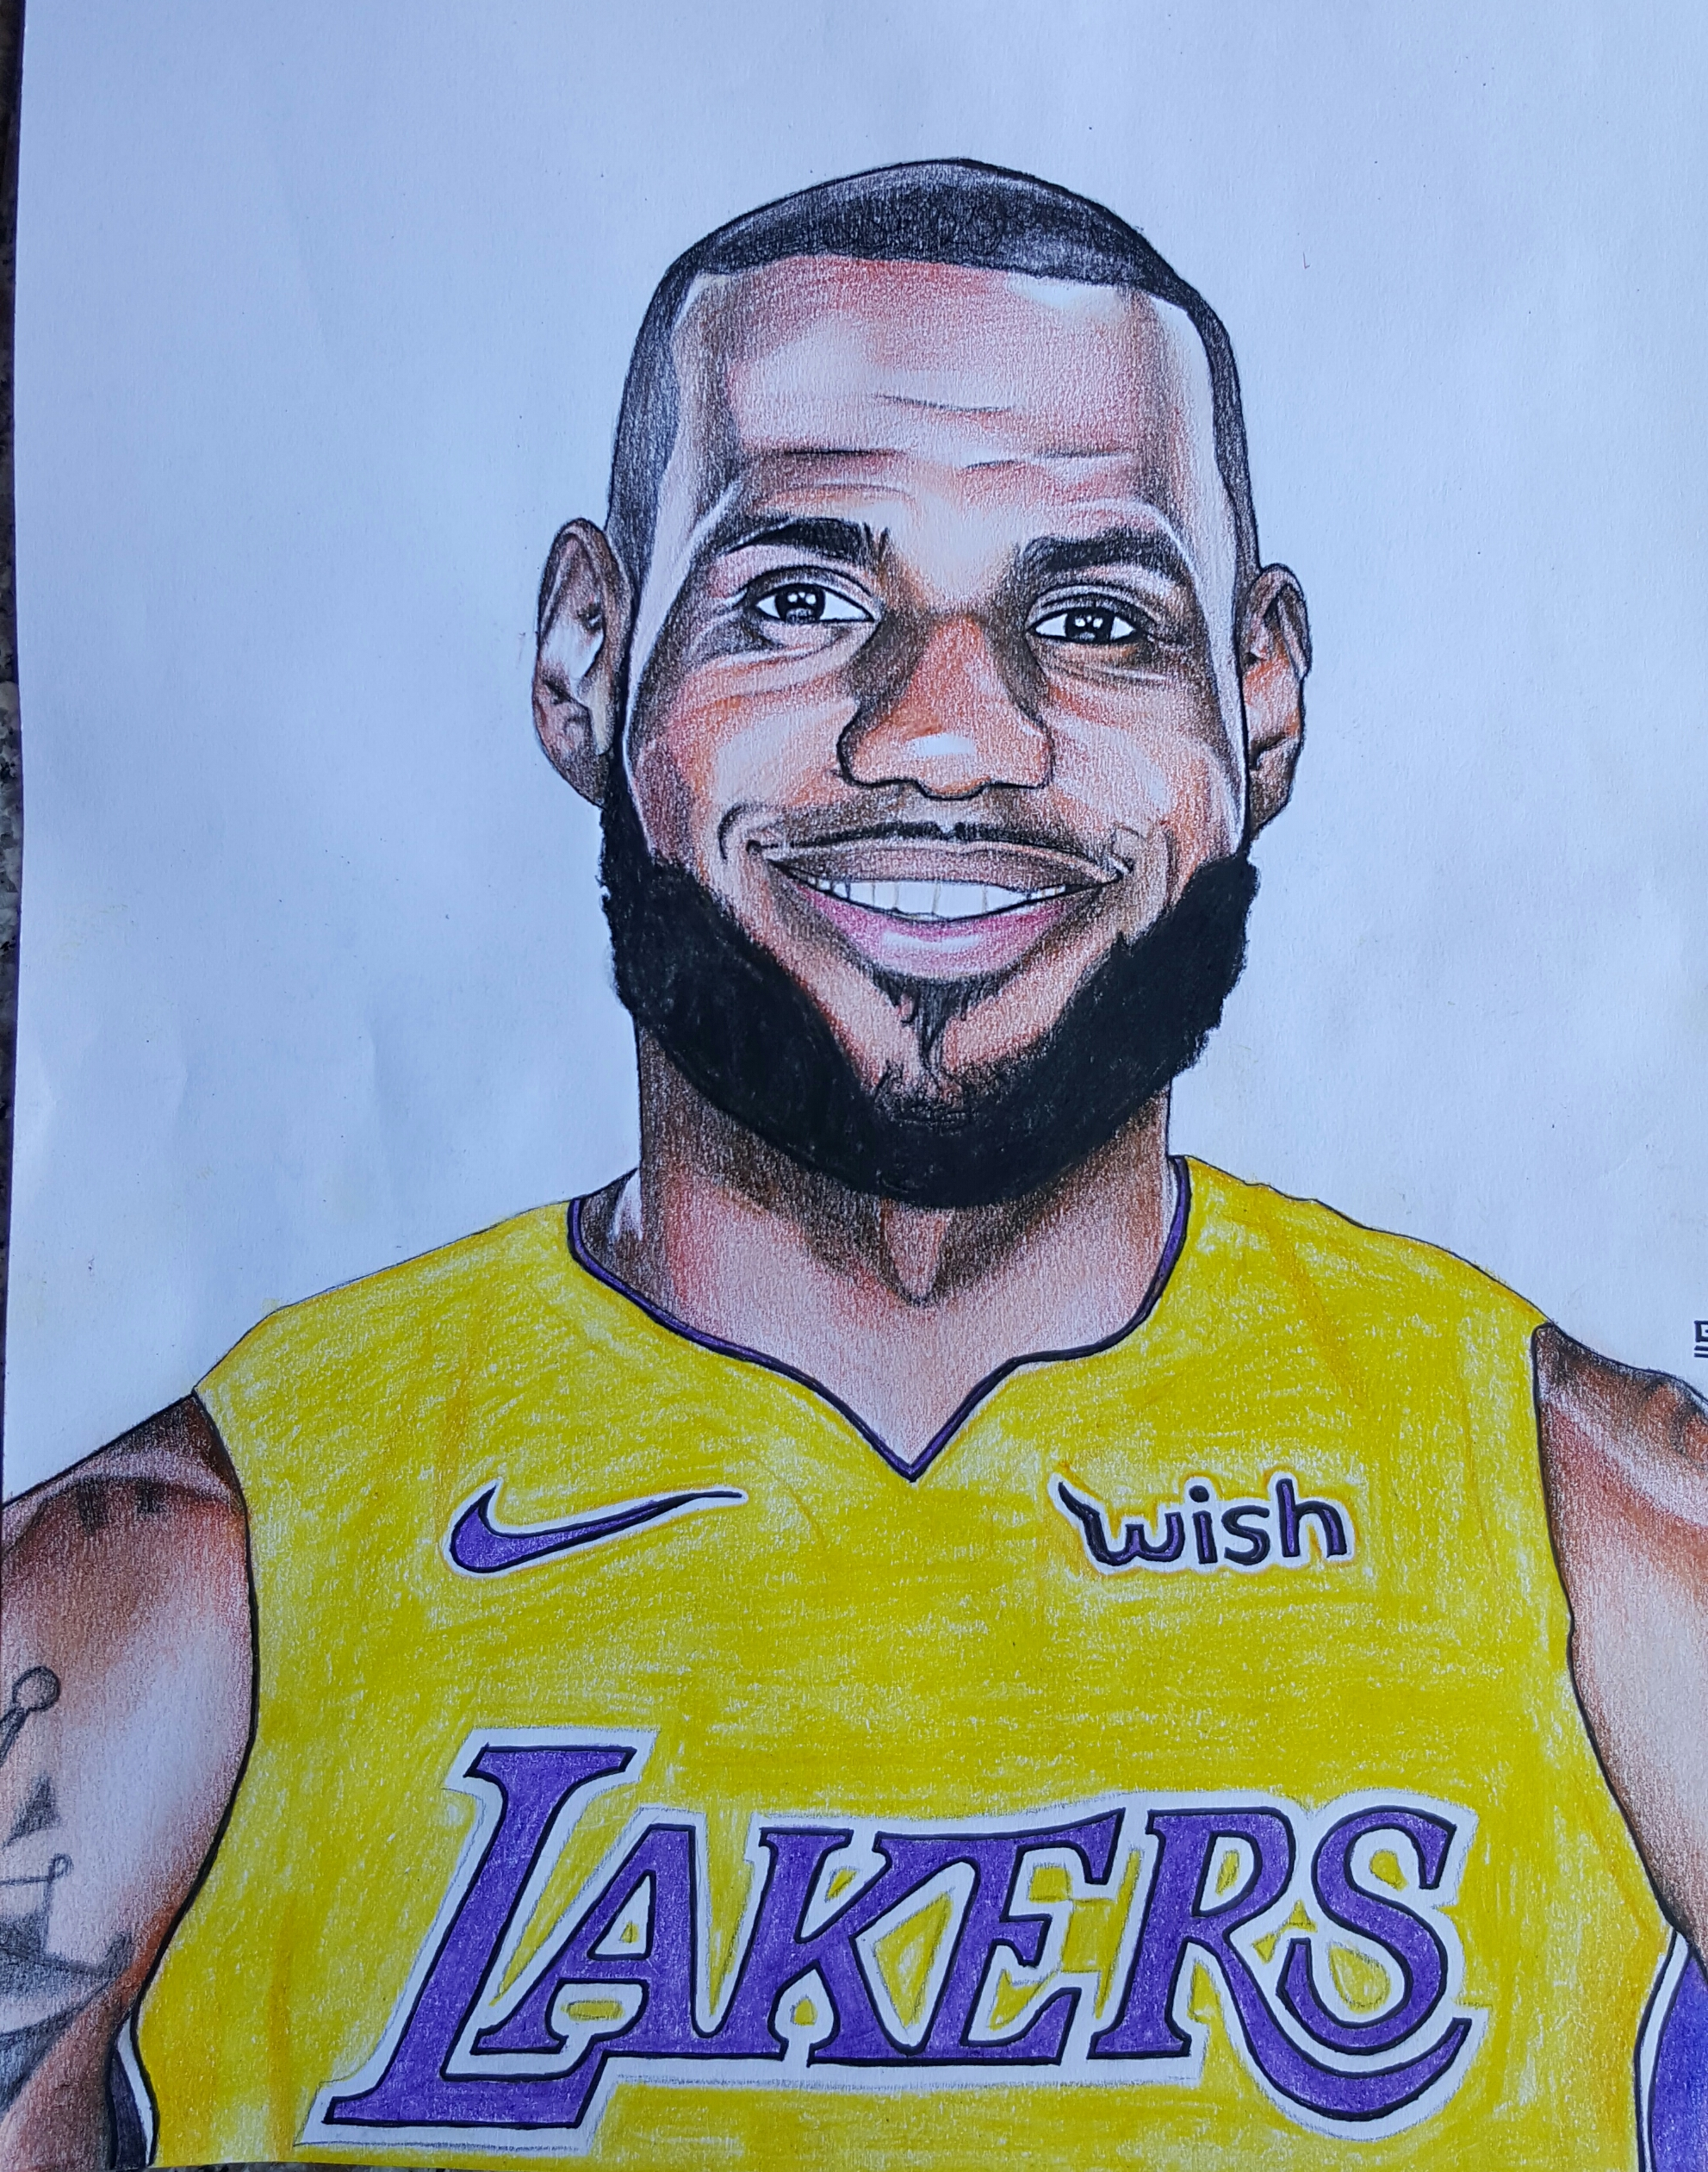 How To Draw Lebron James : lebron, james, LeBron, Drawing, Lakers